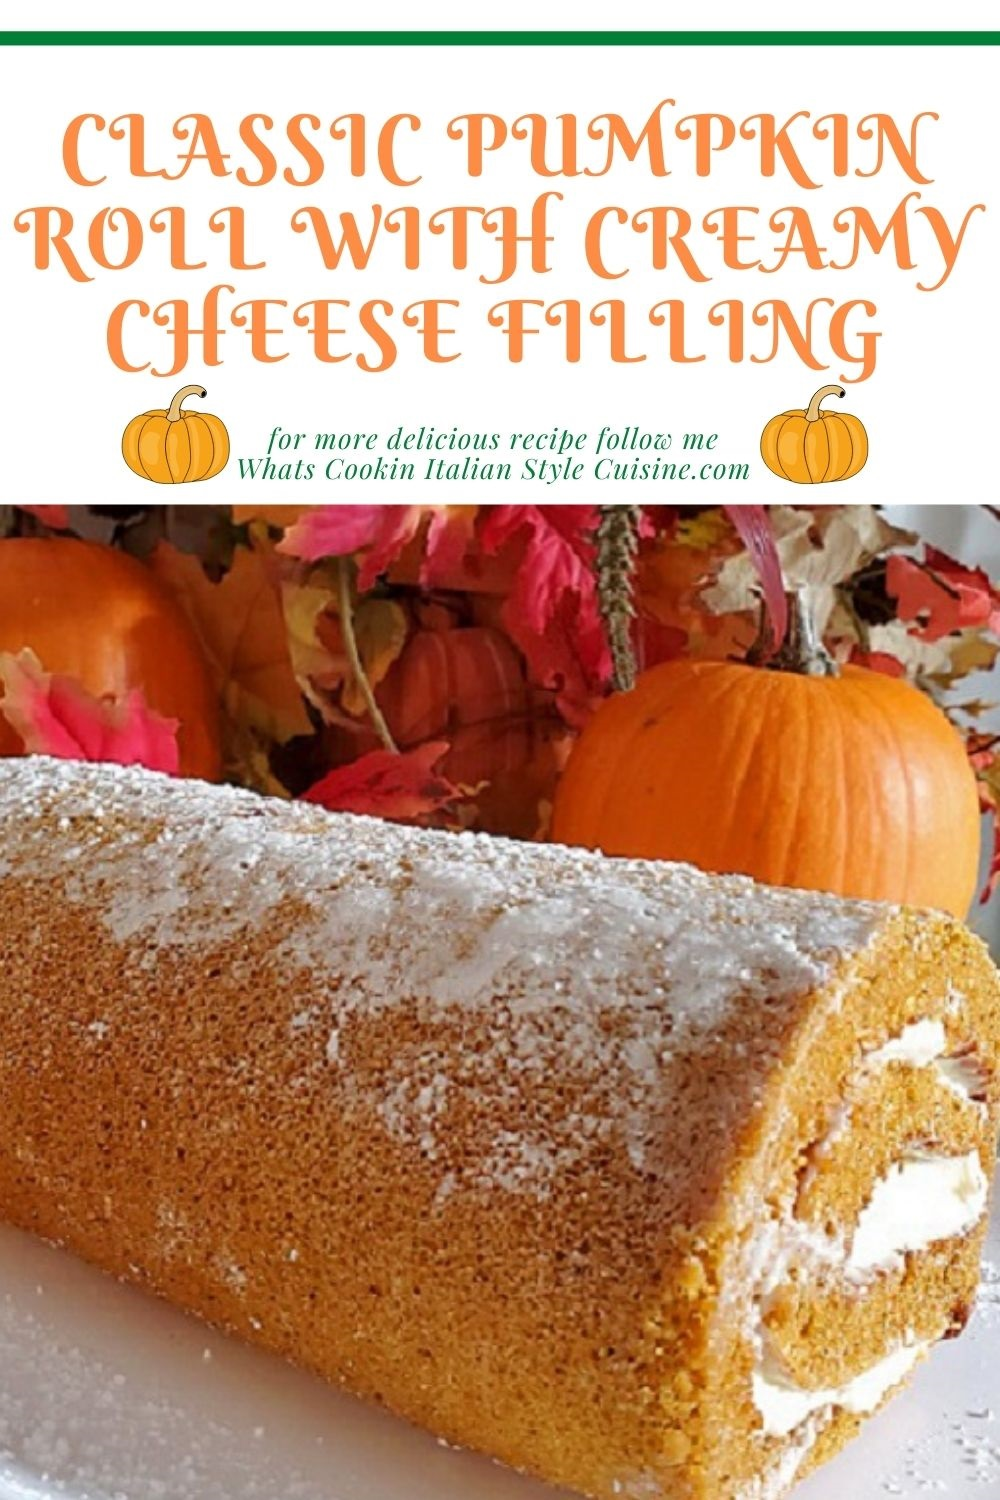 this is a pin for later on how to make a classic pumpkin roll with cheese filling